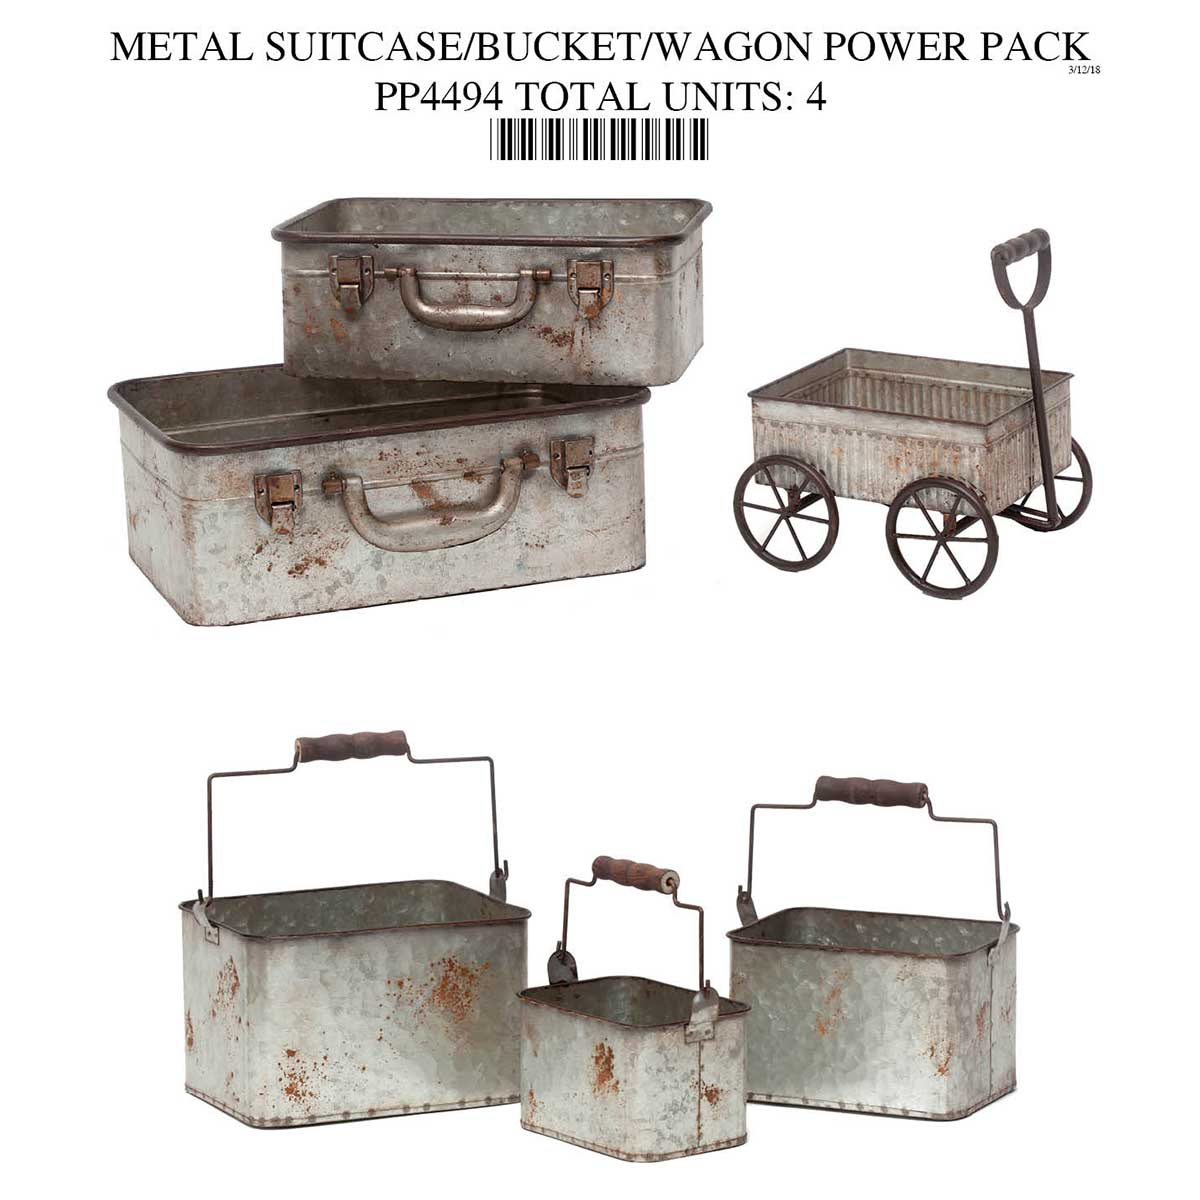 METAL SUITCASE/BUCKET/WAGON POWER PACK 4 UNITS